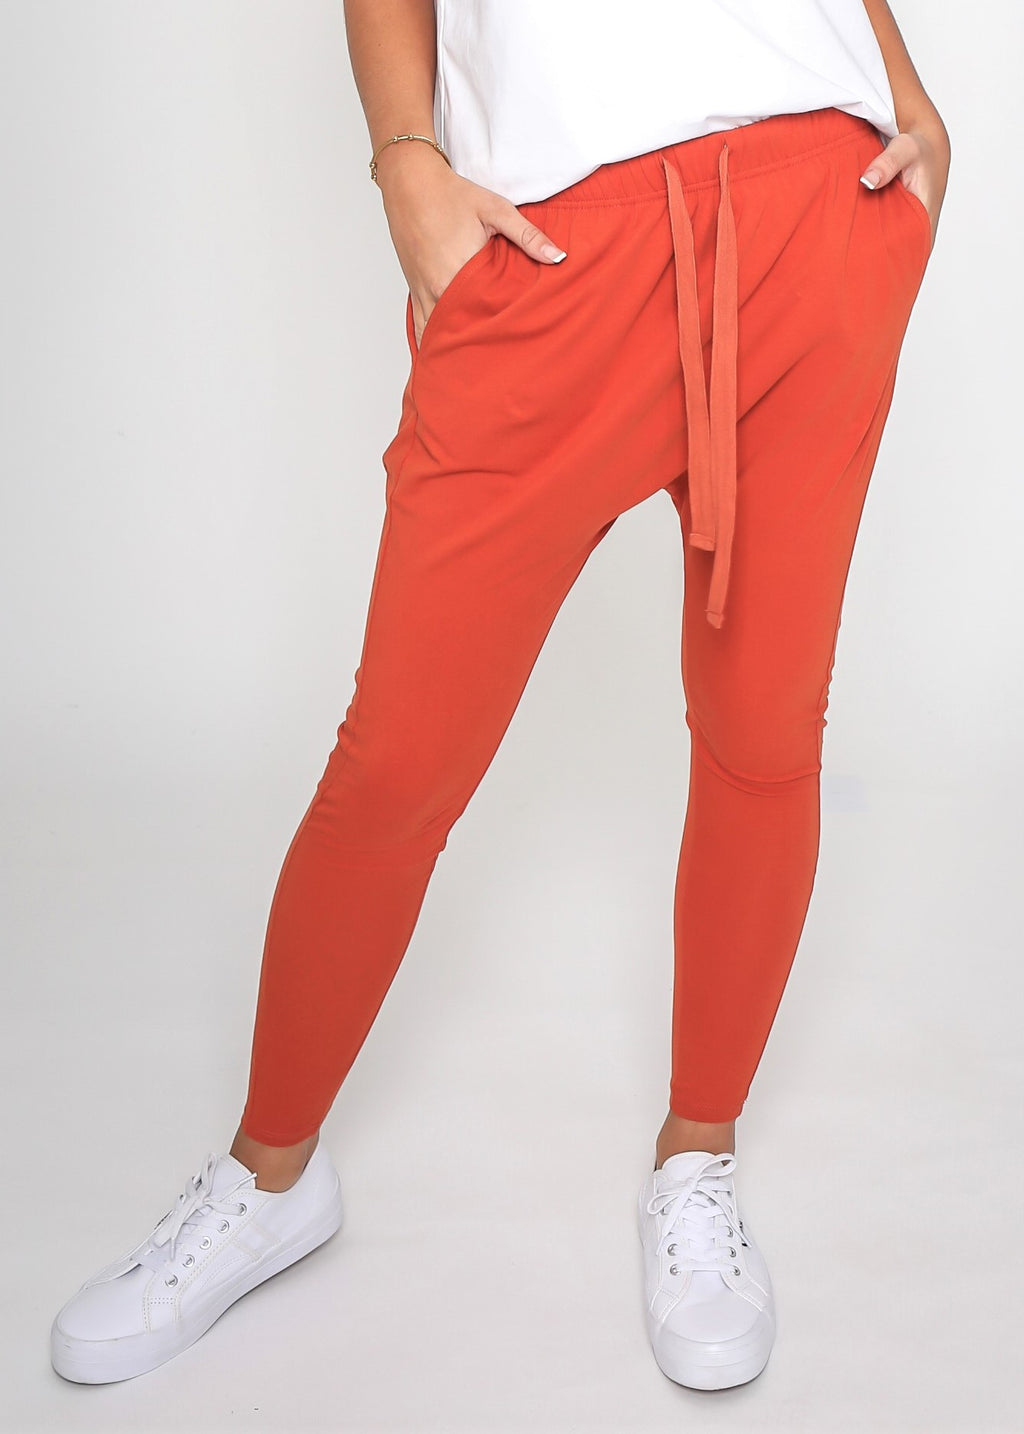 KIERA DROP CROTCH JOGGER - FIRE RUST - MARK DOWN MADNESS